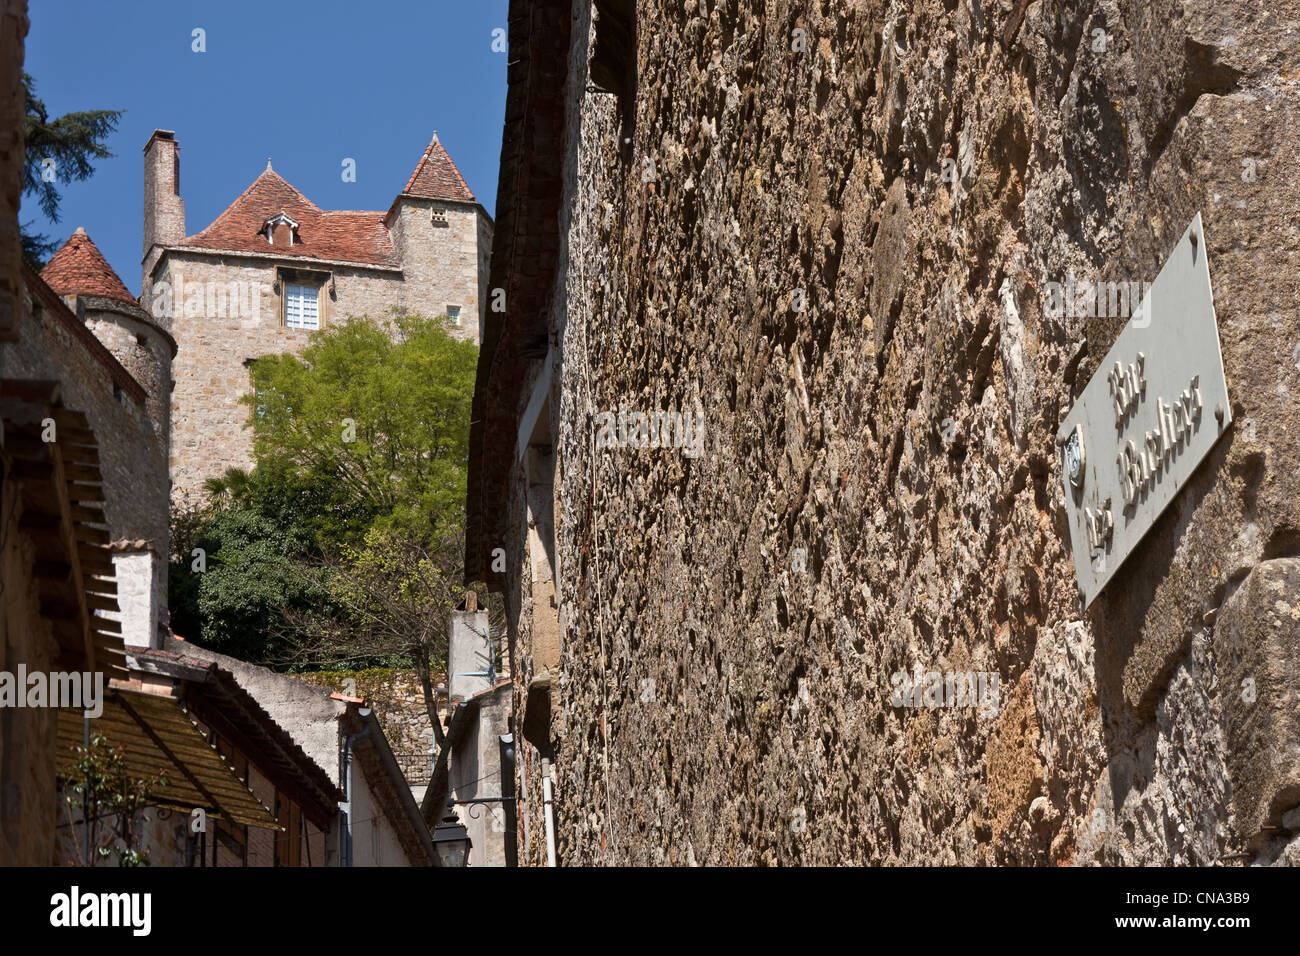 France, Lot, Puy l'Eveque, Old Street and remains of the Boatmen - Stock Image